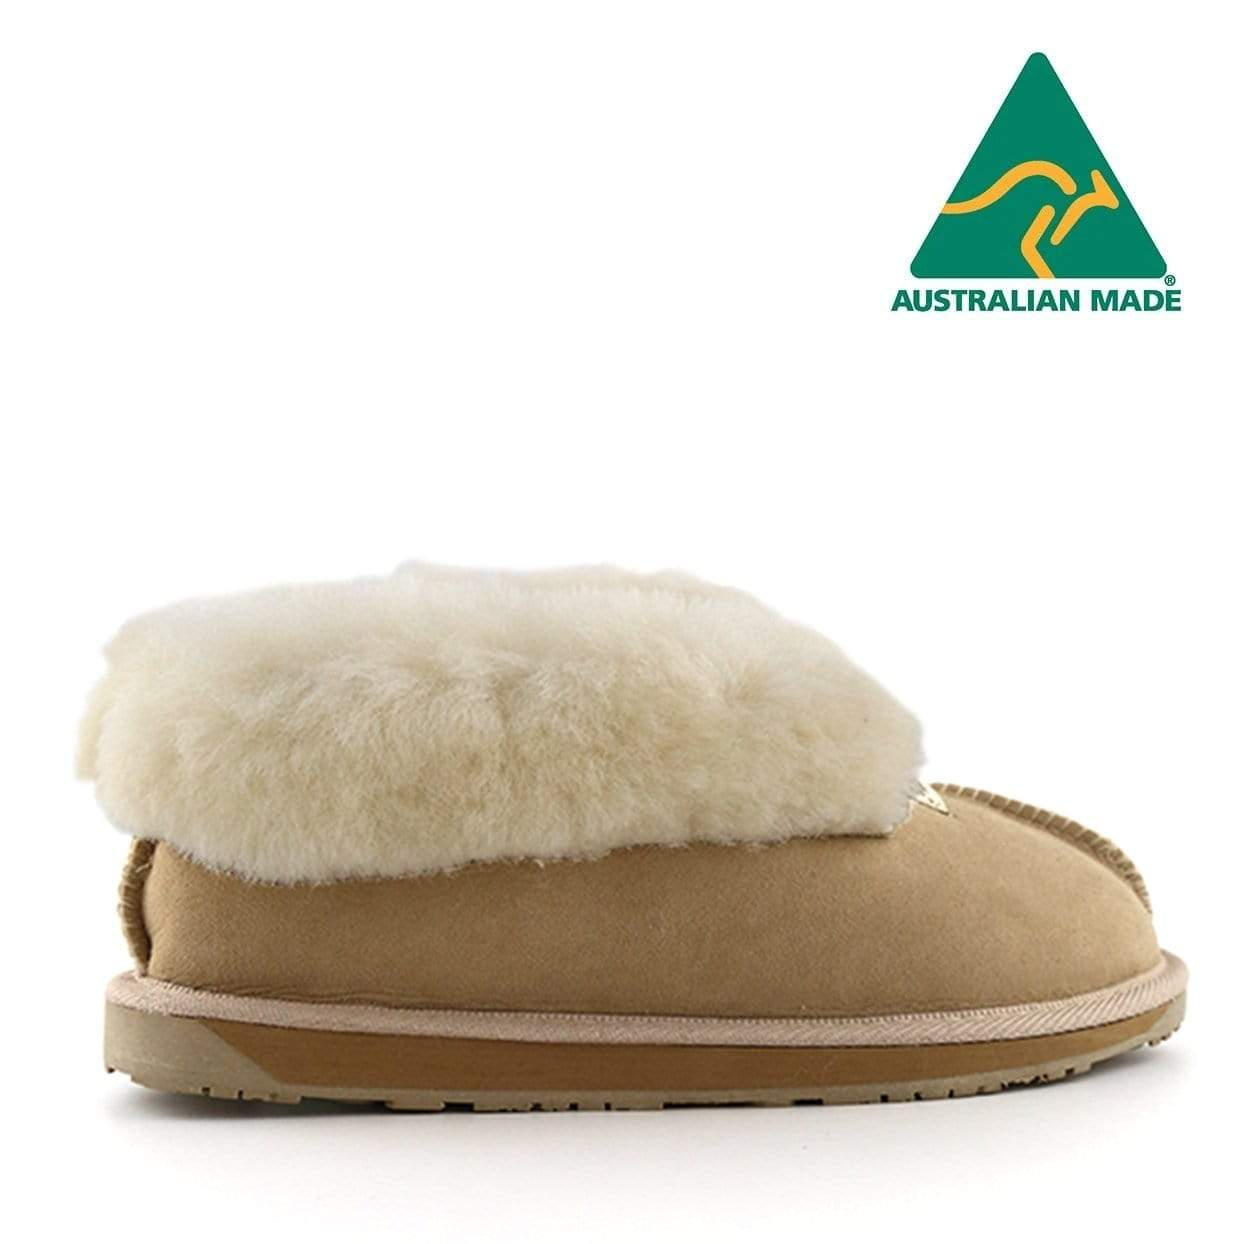 UGG Premium Classic Slippers - Made in Australia